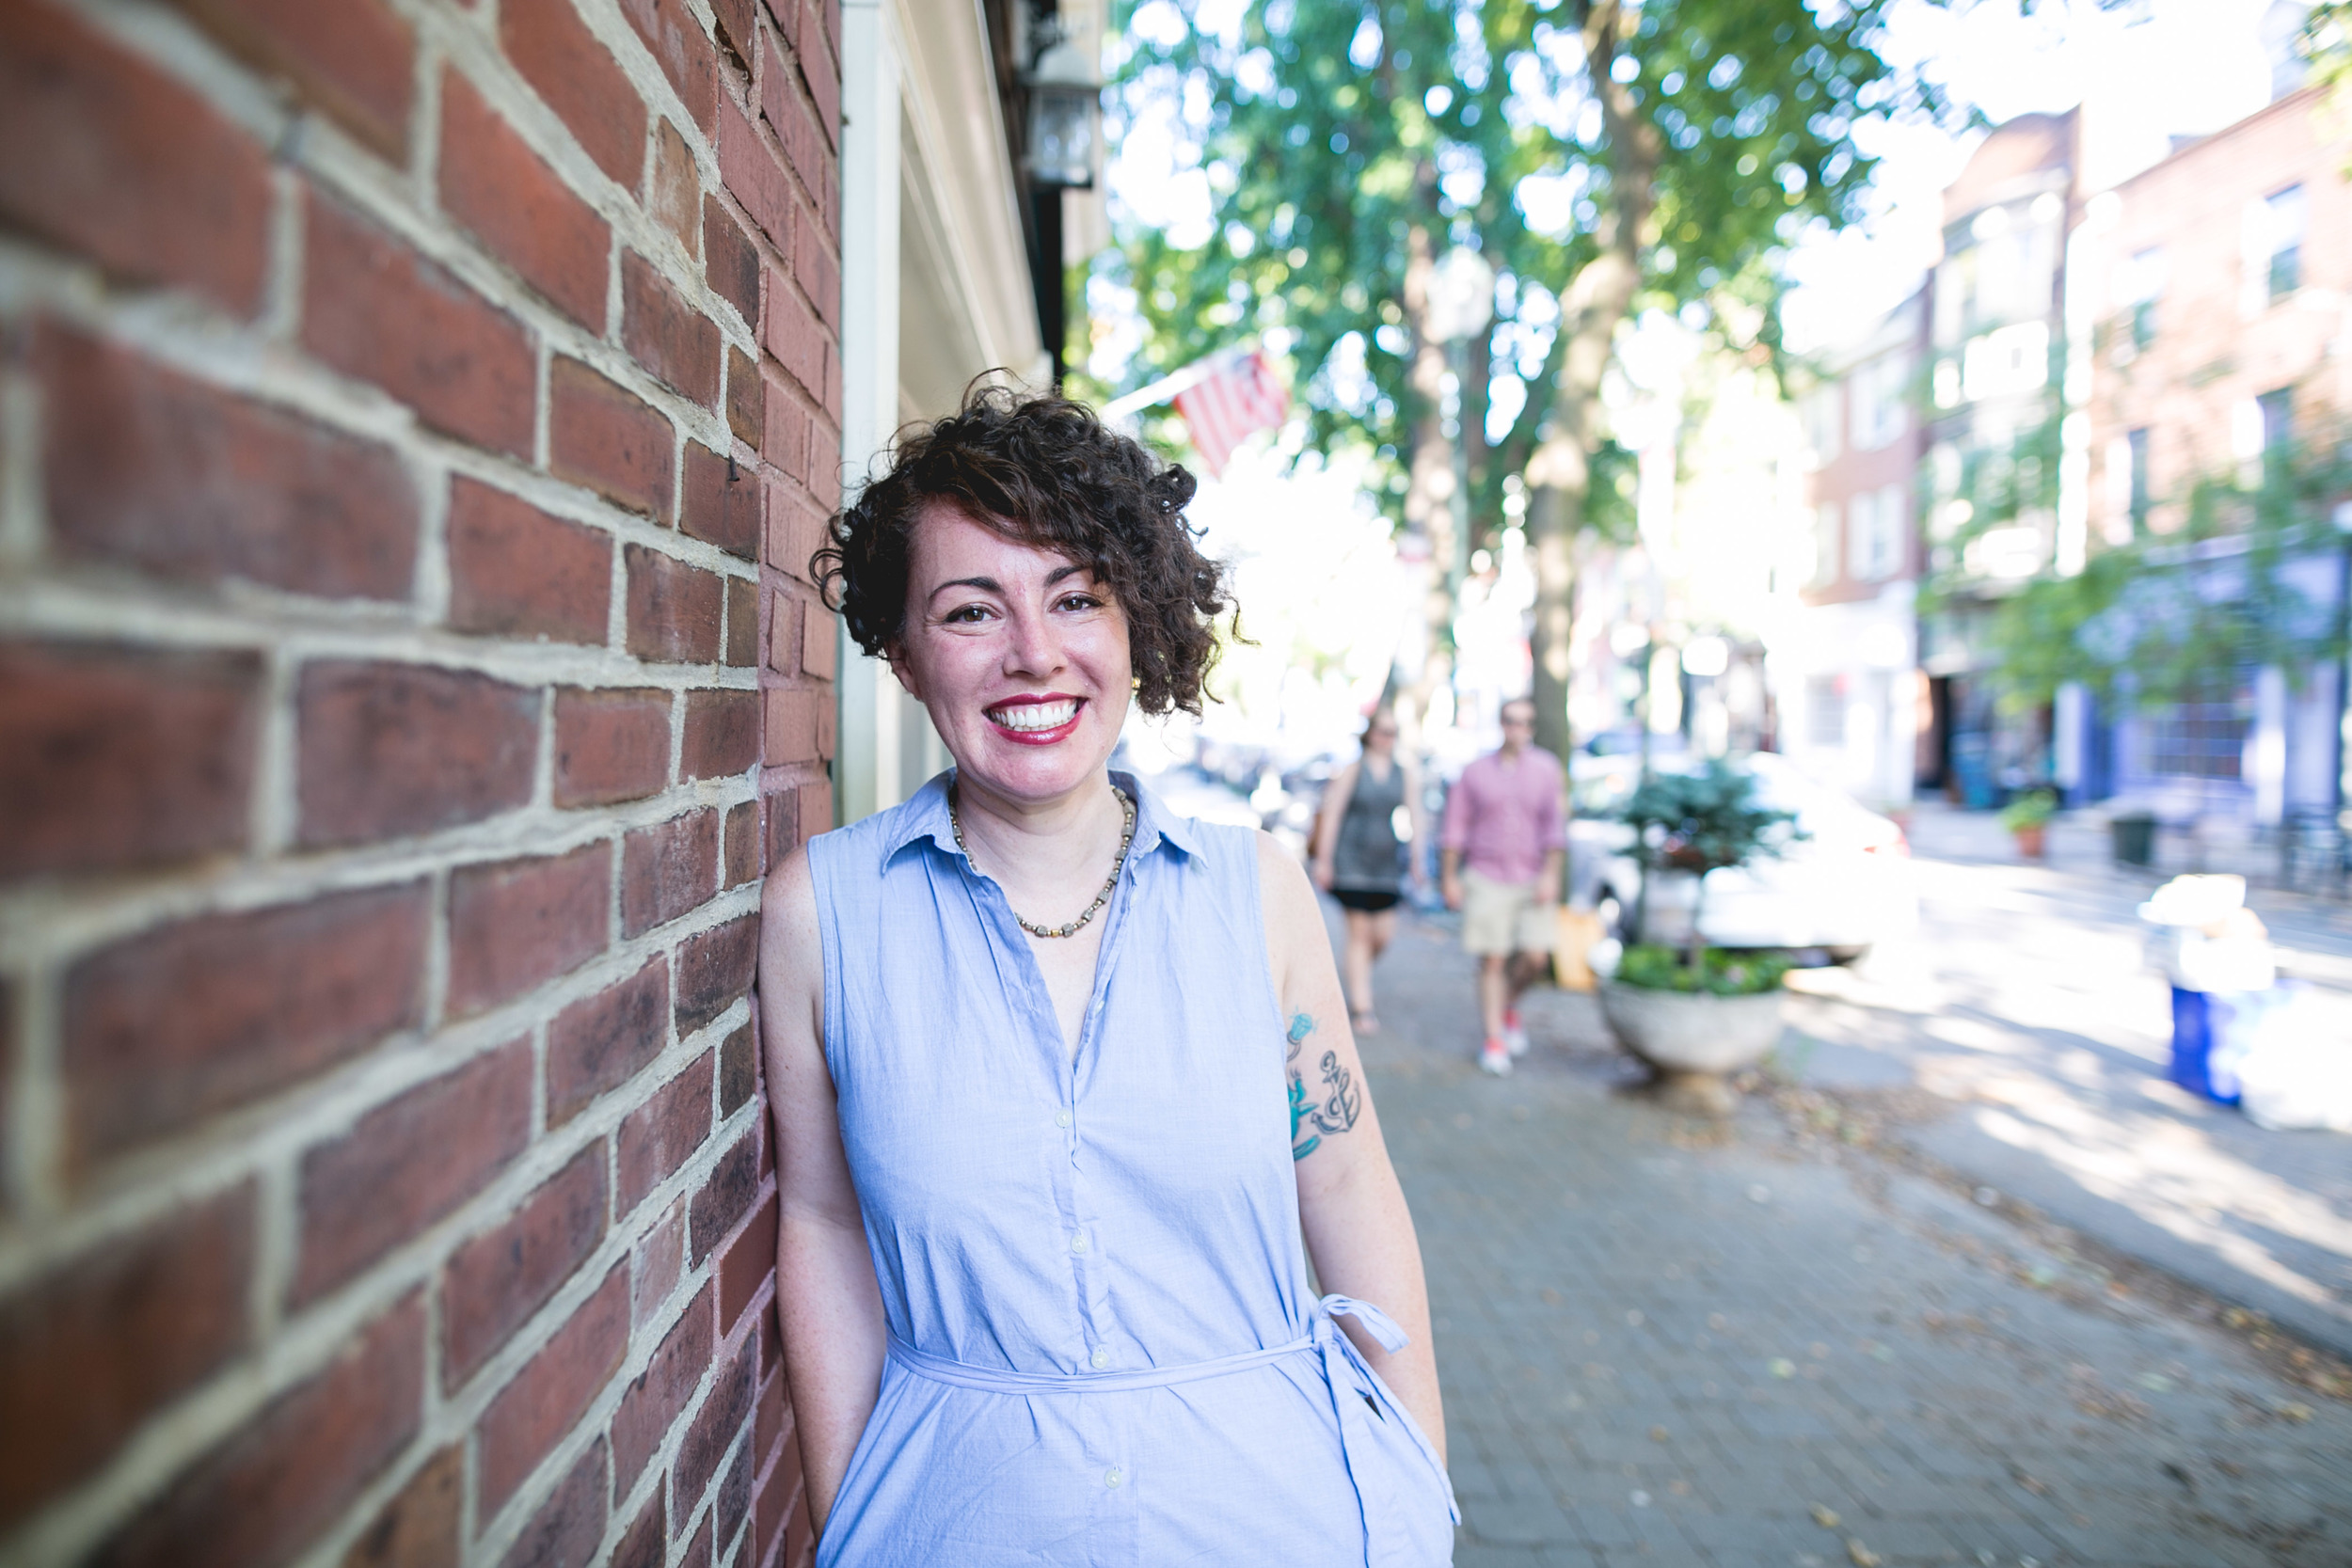 Philadelphia Weekly Forward Philly Headshots by LGBTQ photographer Swiger Photography